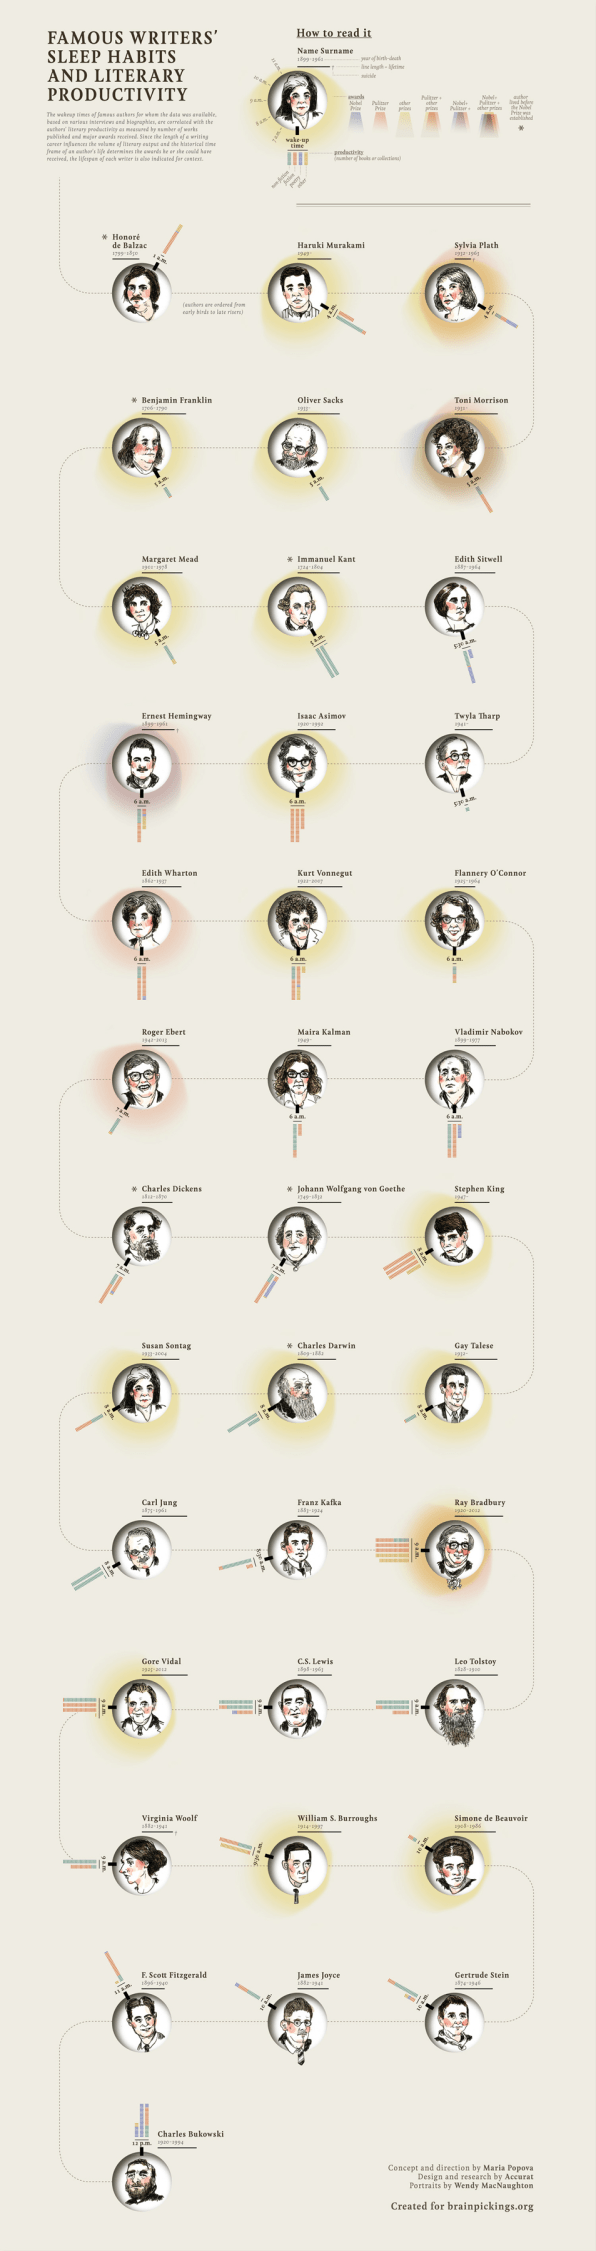 What The Sleep Habits of Famous Writers Reveal About Their Productivity